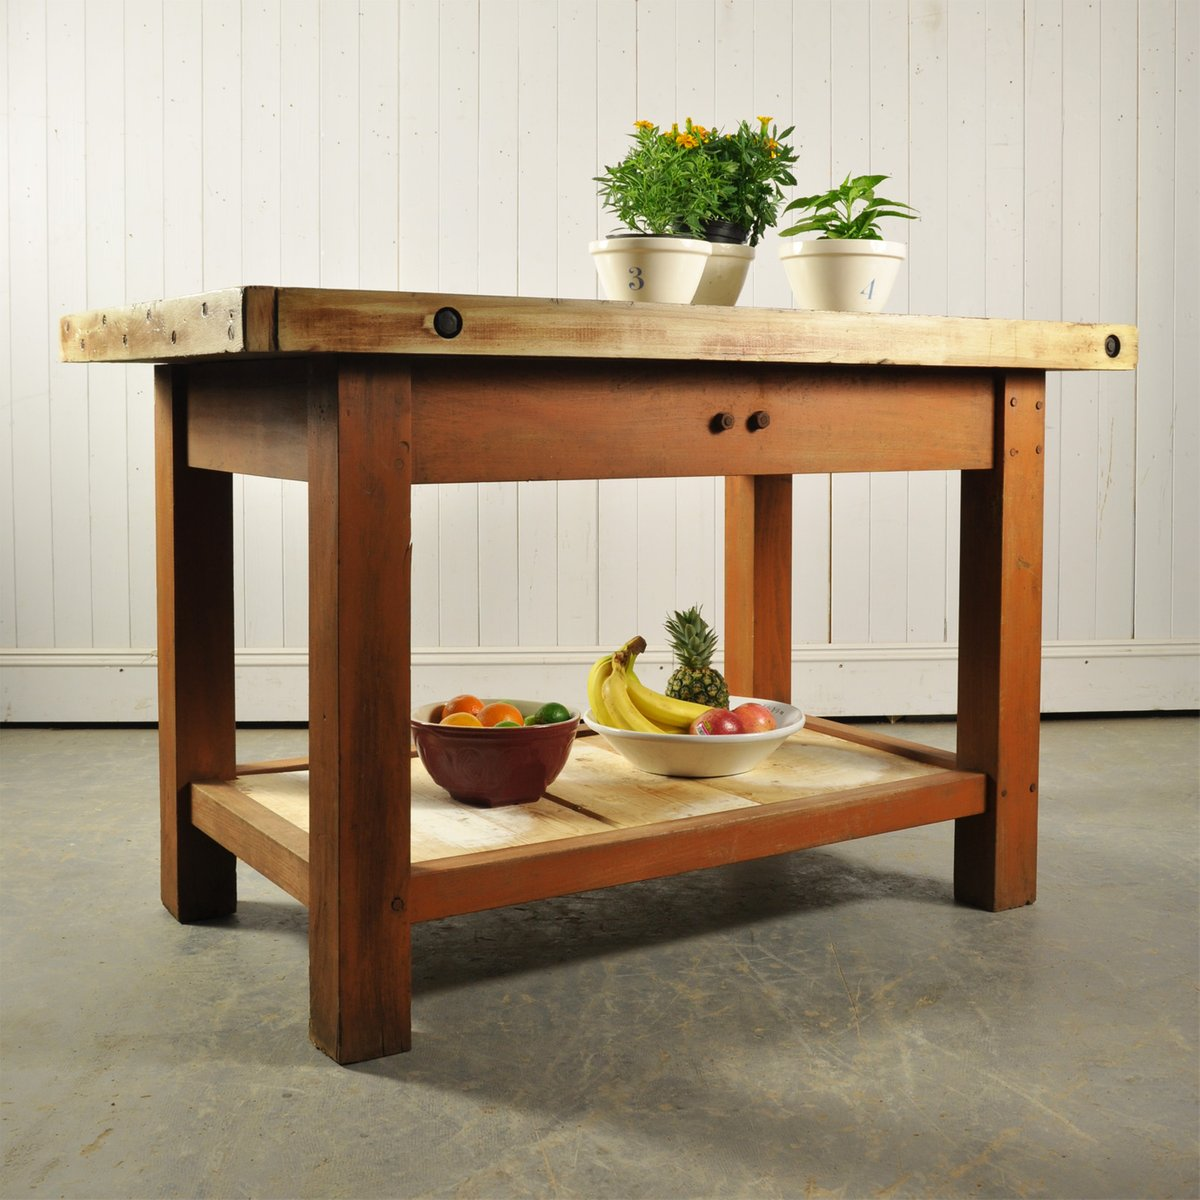 Vintage industrial oak kitchen island for sale at pamono - Industrial kitchen island for sale ...